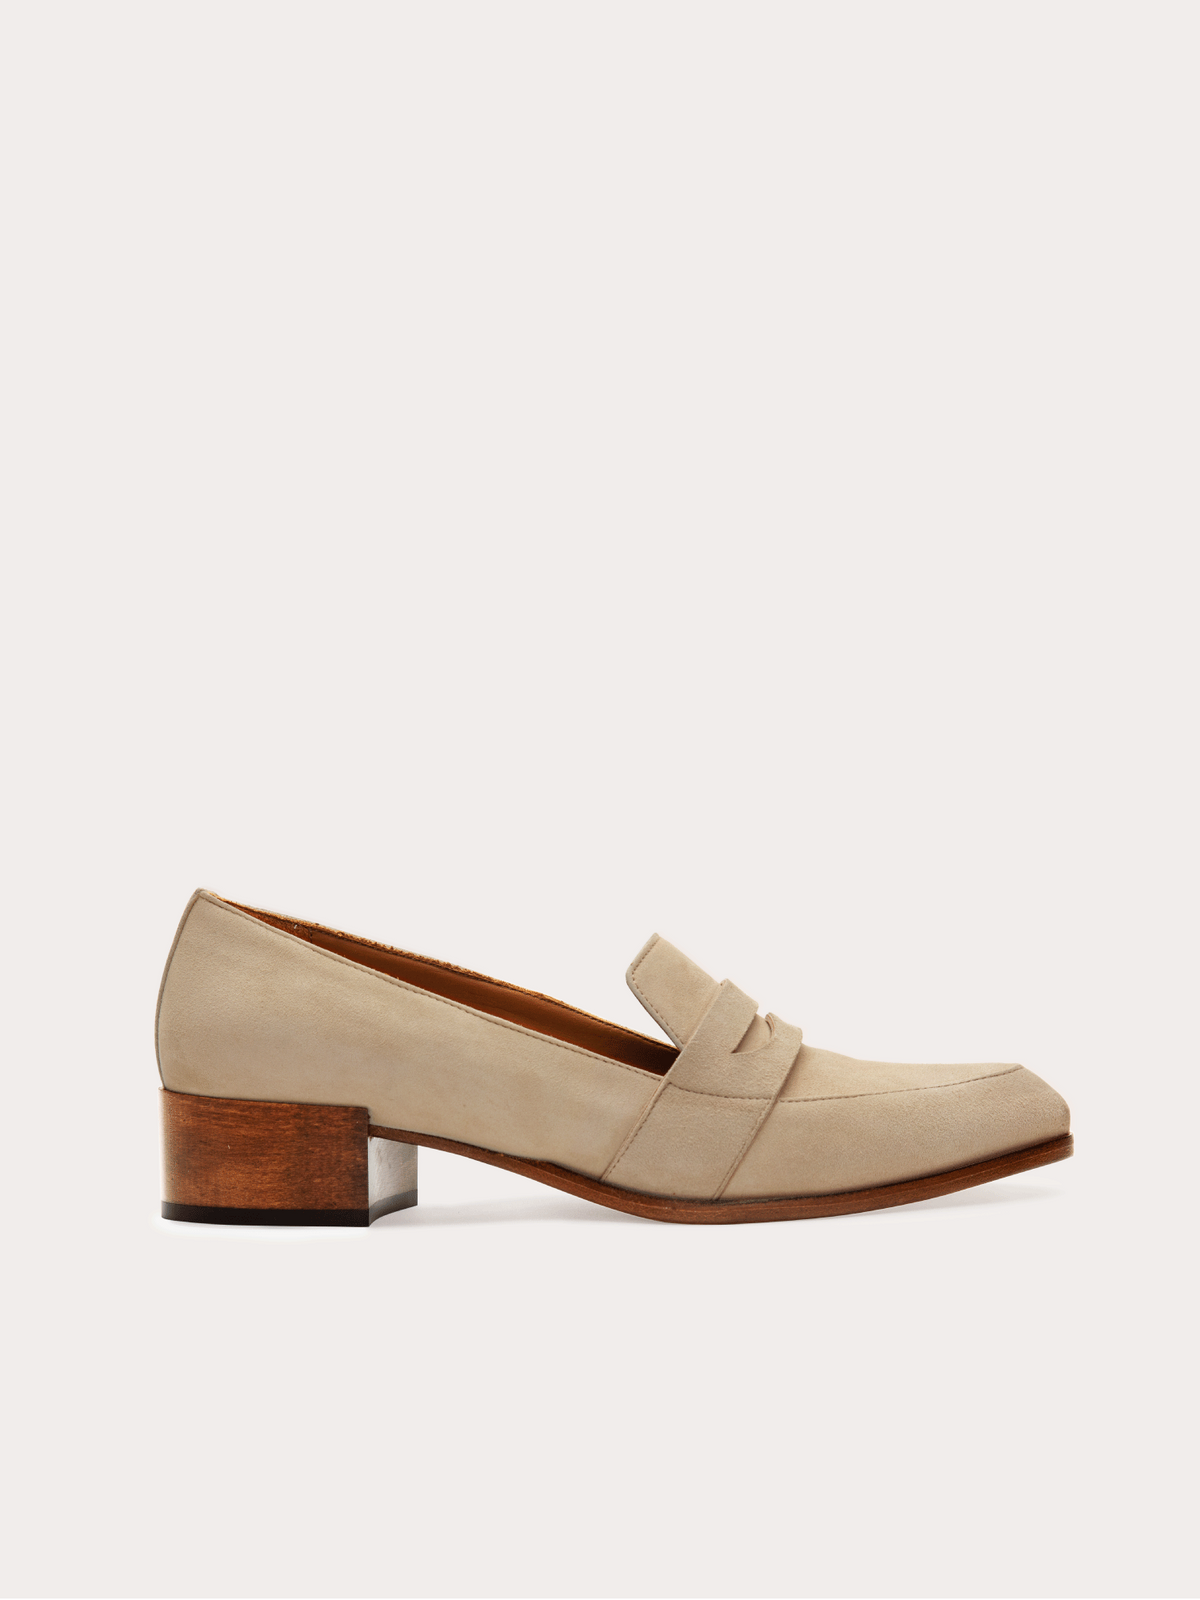 Thelma Loafer in Wheat